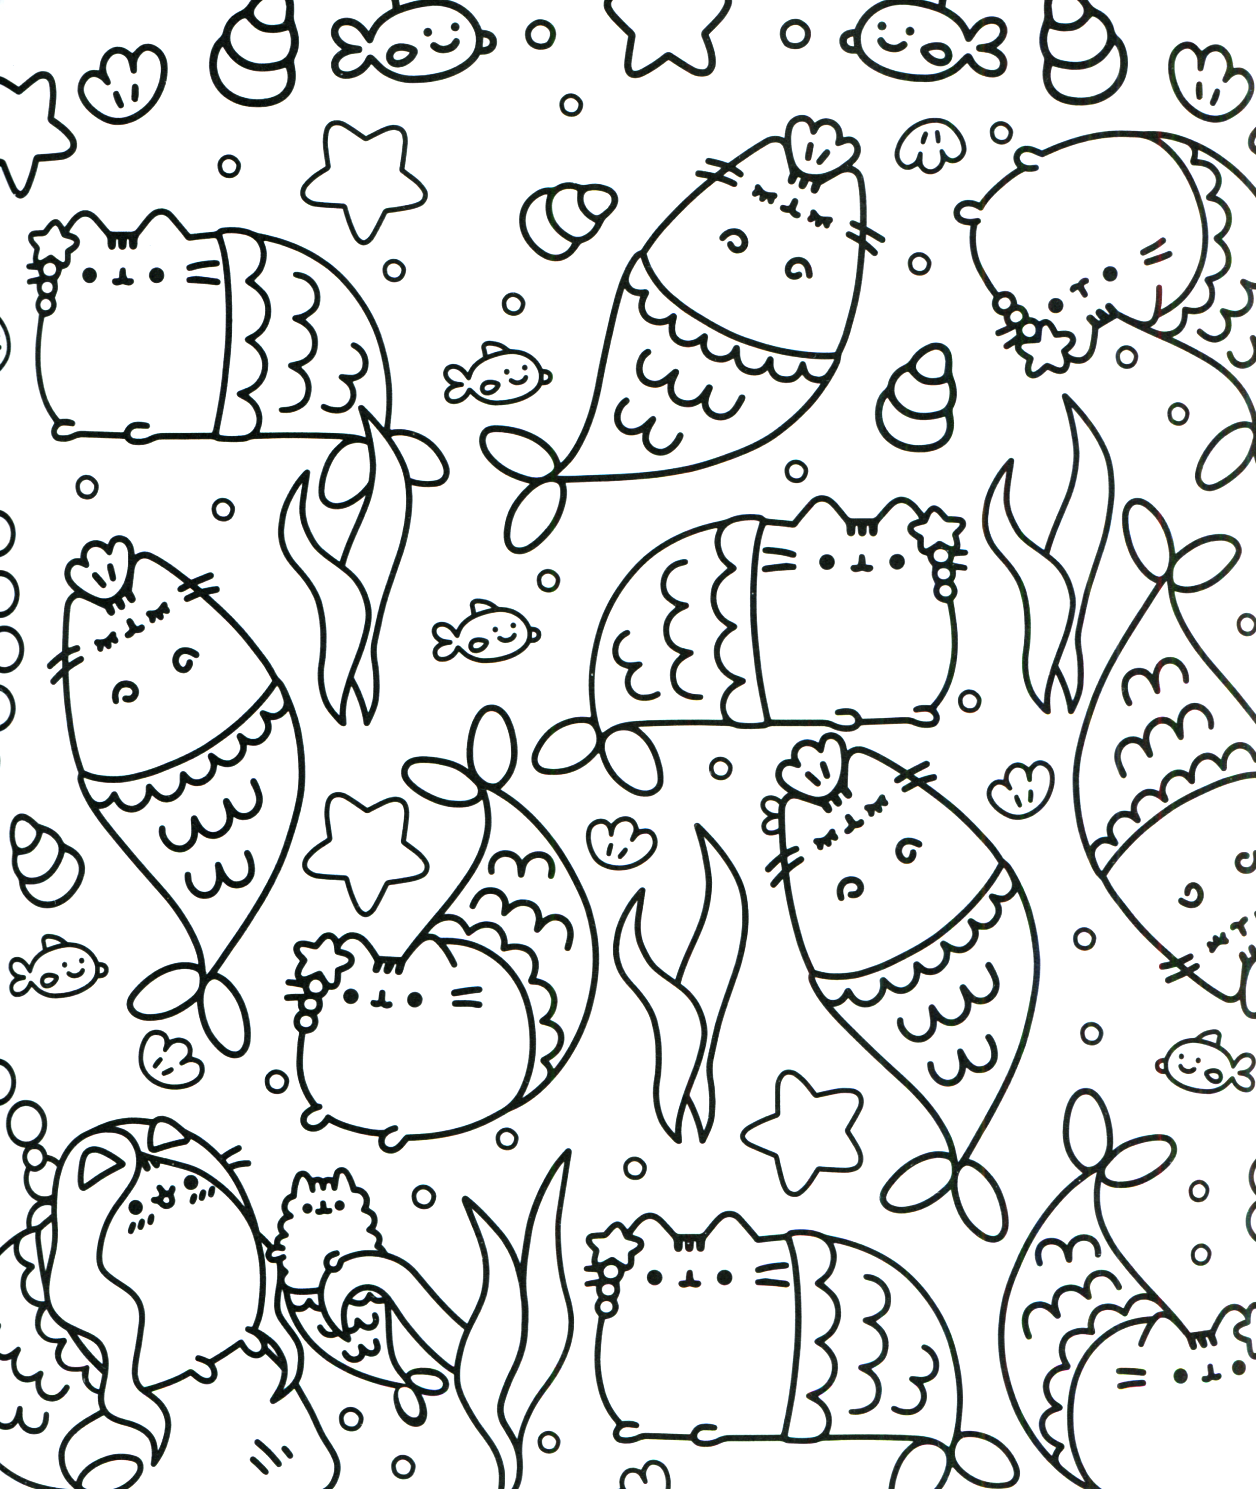 Pusheen Coloring Book Pusheen Pusheen The Cat Pusheen Coloring Pages Mermaid Coloring Pages Unicorn Coloring Pages